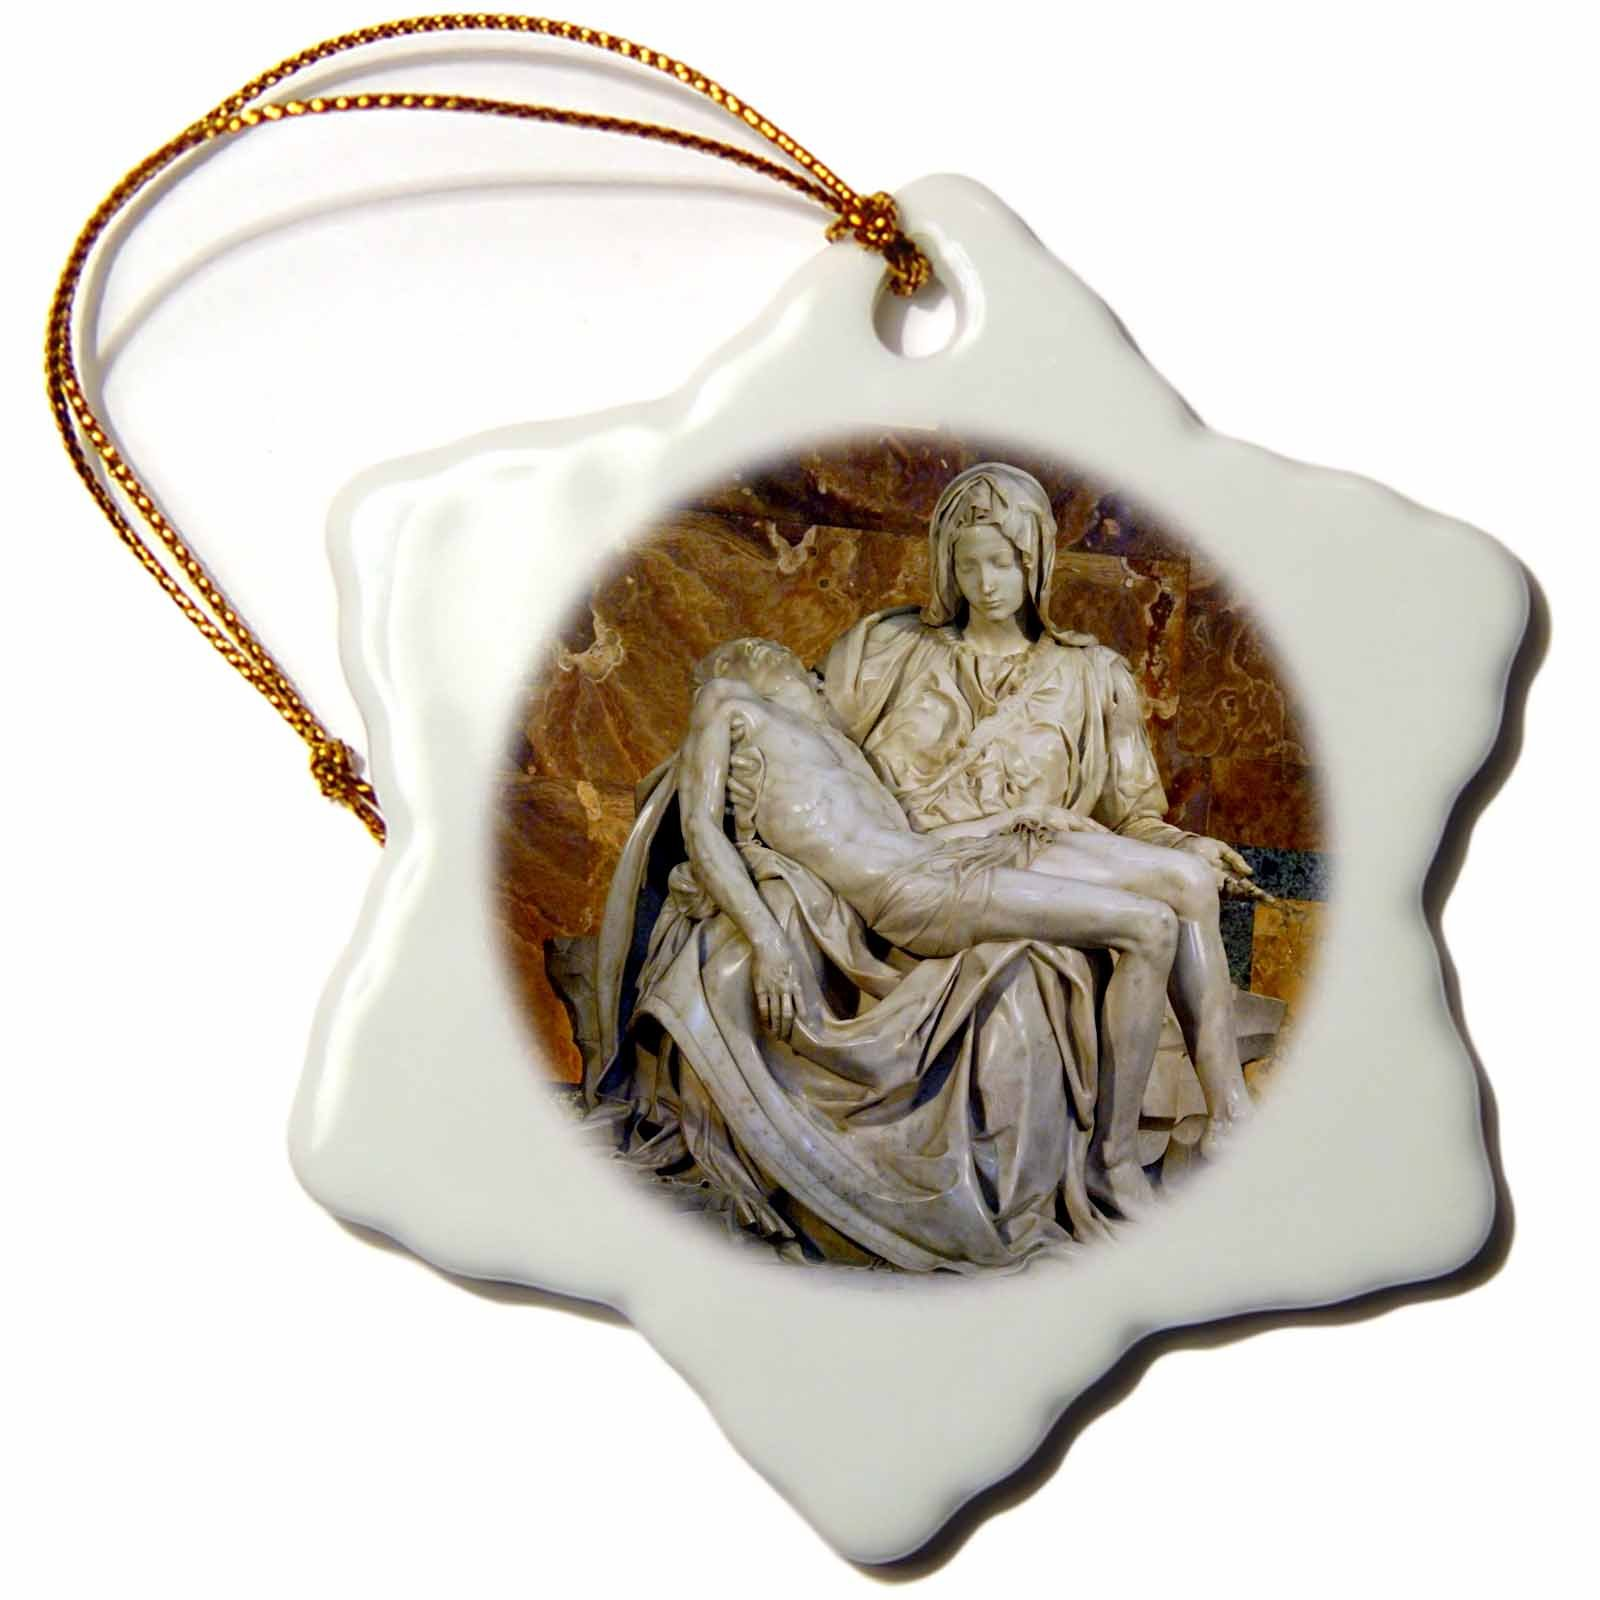 3dRose orn_82096_1 Italy Rome Vatican St. Peters Basilica Pieta Cindy Miller Hopkins Snowflake Decorative Hanging Ornament, Porcelain, 3-Inch by 3dRose